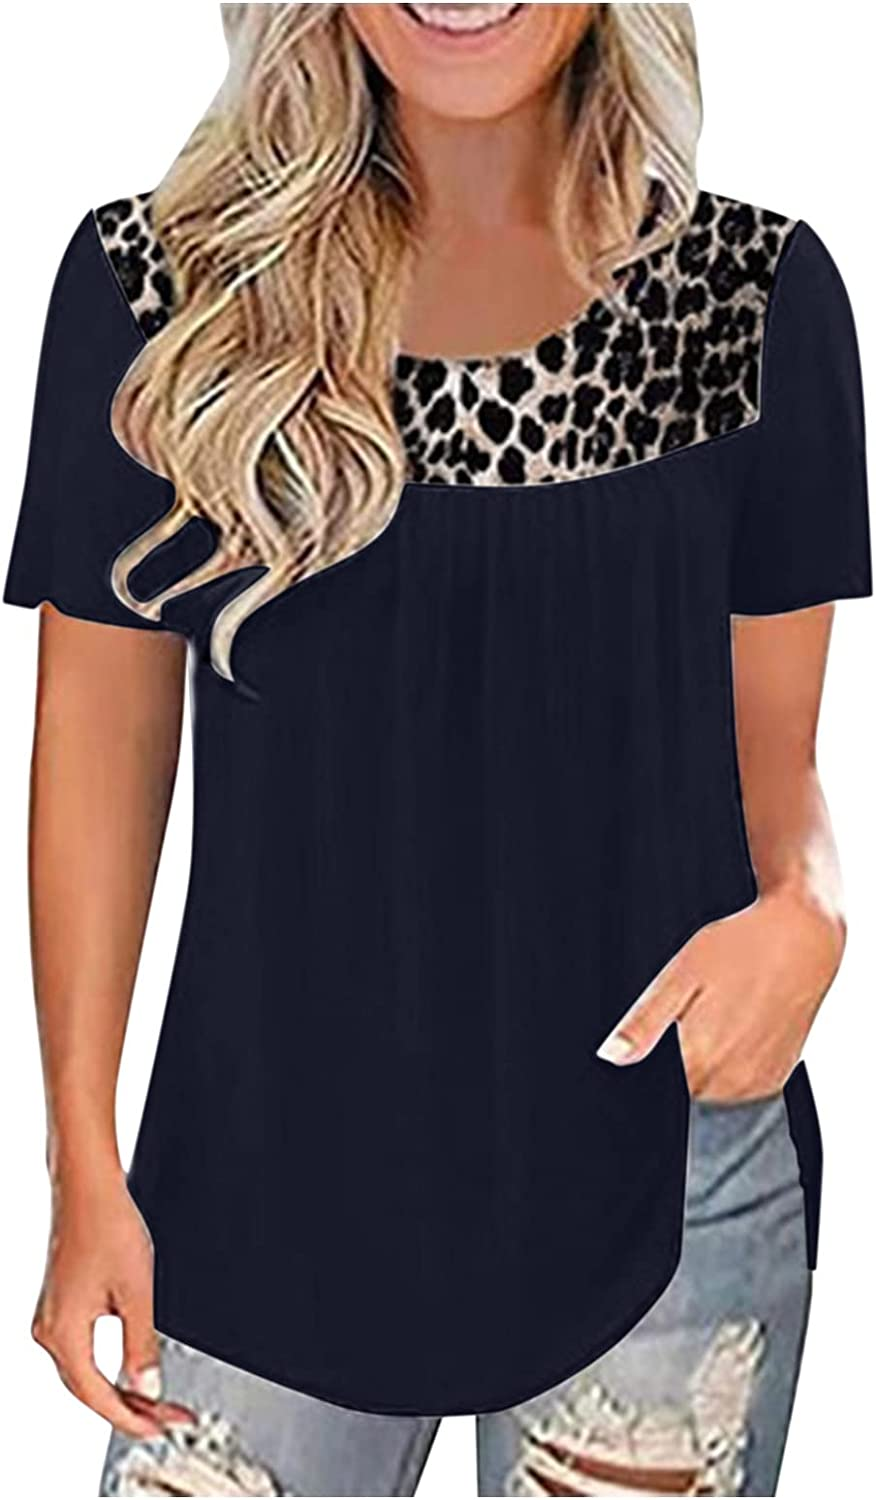 AODONG Short Sleeve Tops for Women, Women's Summer Tops Plus Size Lace Pleated Shirts Casual Loose Blouses Tunic Tops